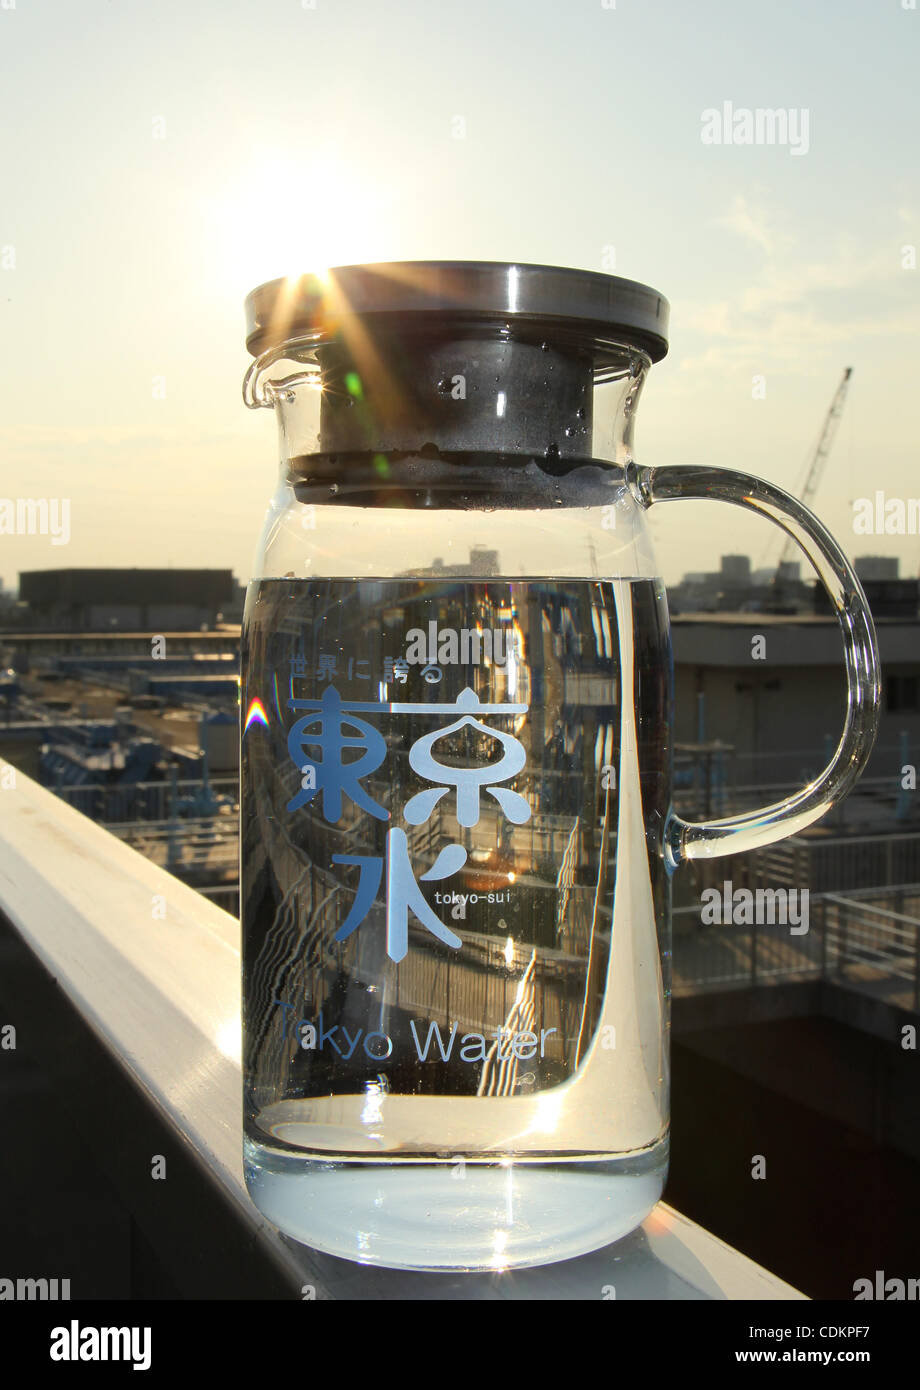 Mar. 24, 2011 - Tokyo, Japan - Water generated from the Kanamachi Water Purifying Plant in Tokyo, Japan. Due to - Stock Image